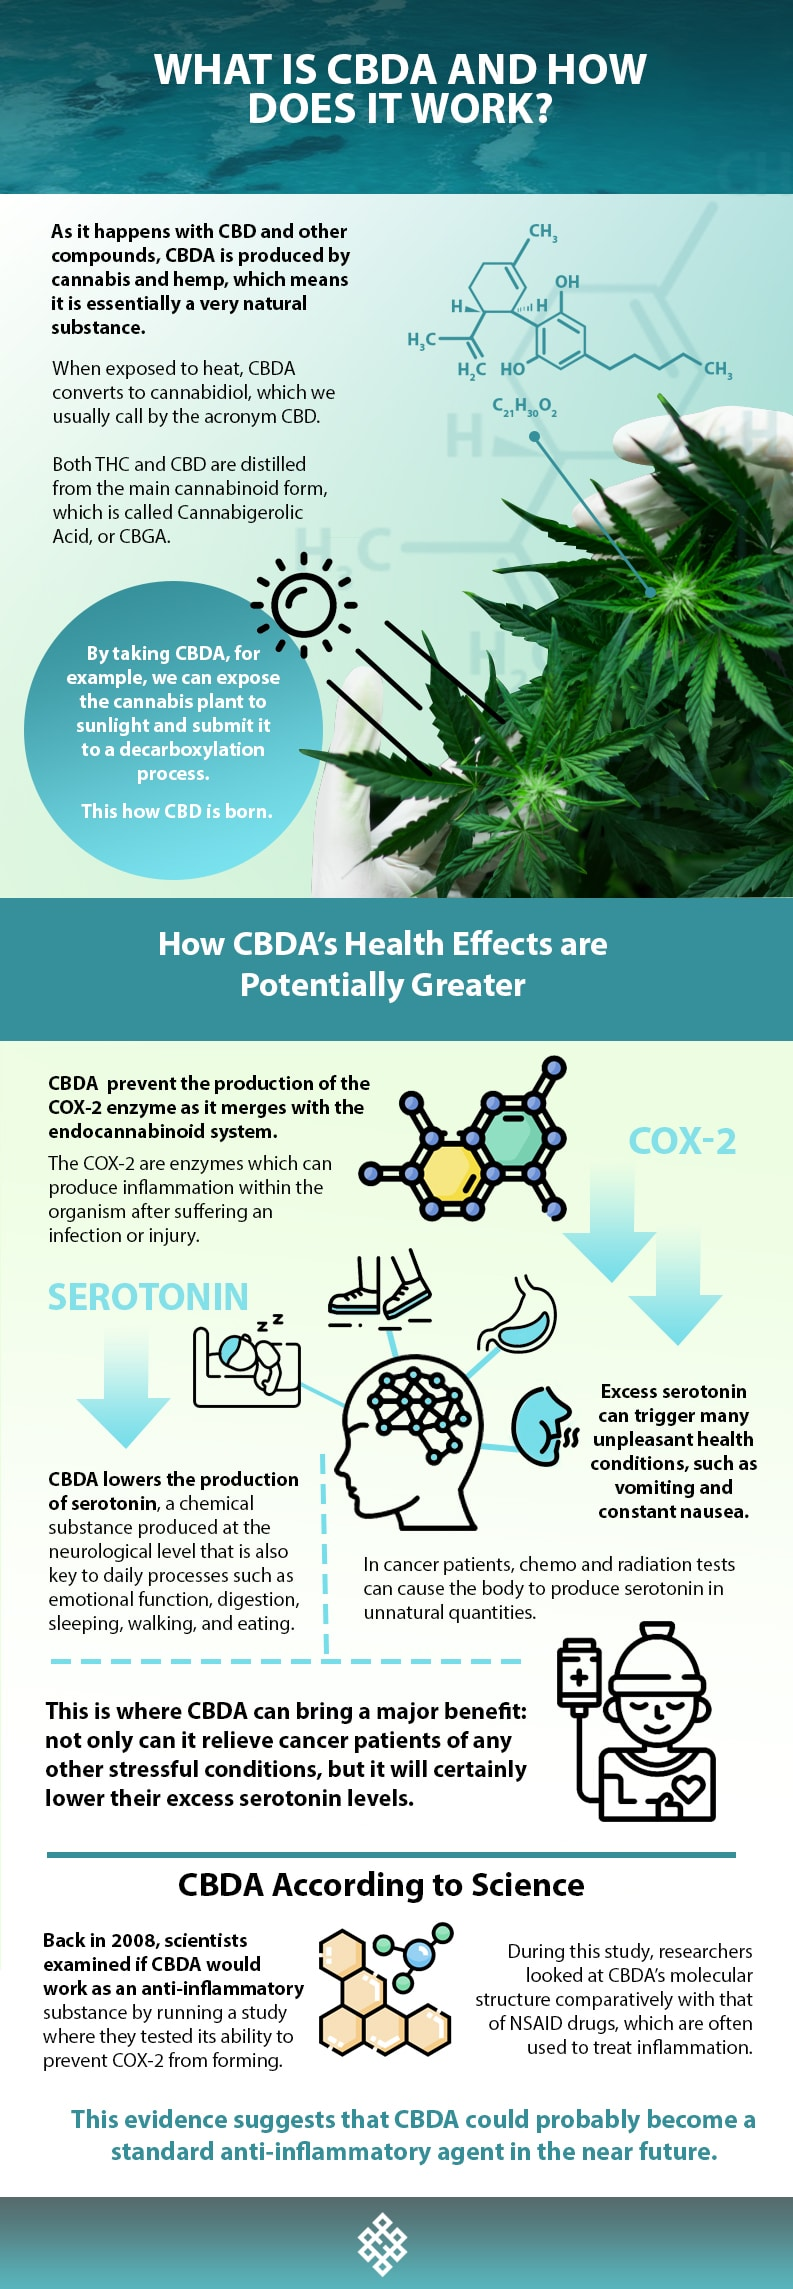 CBDA, What Is CBDA And How Does It Work?